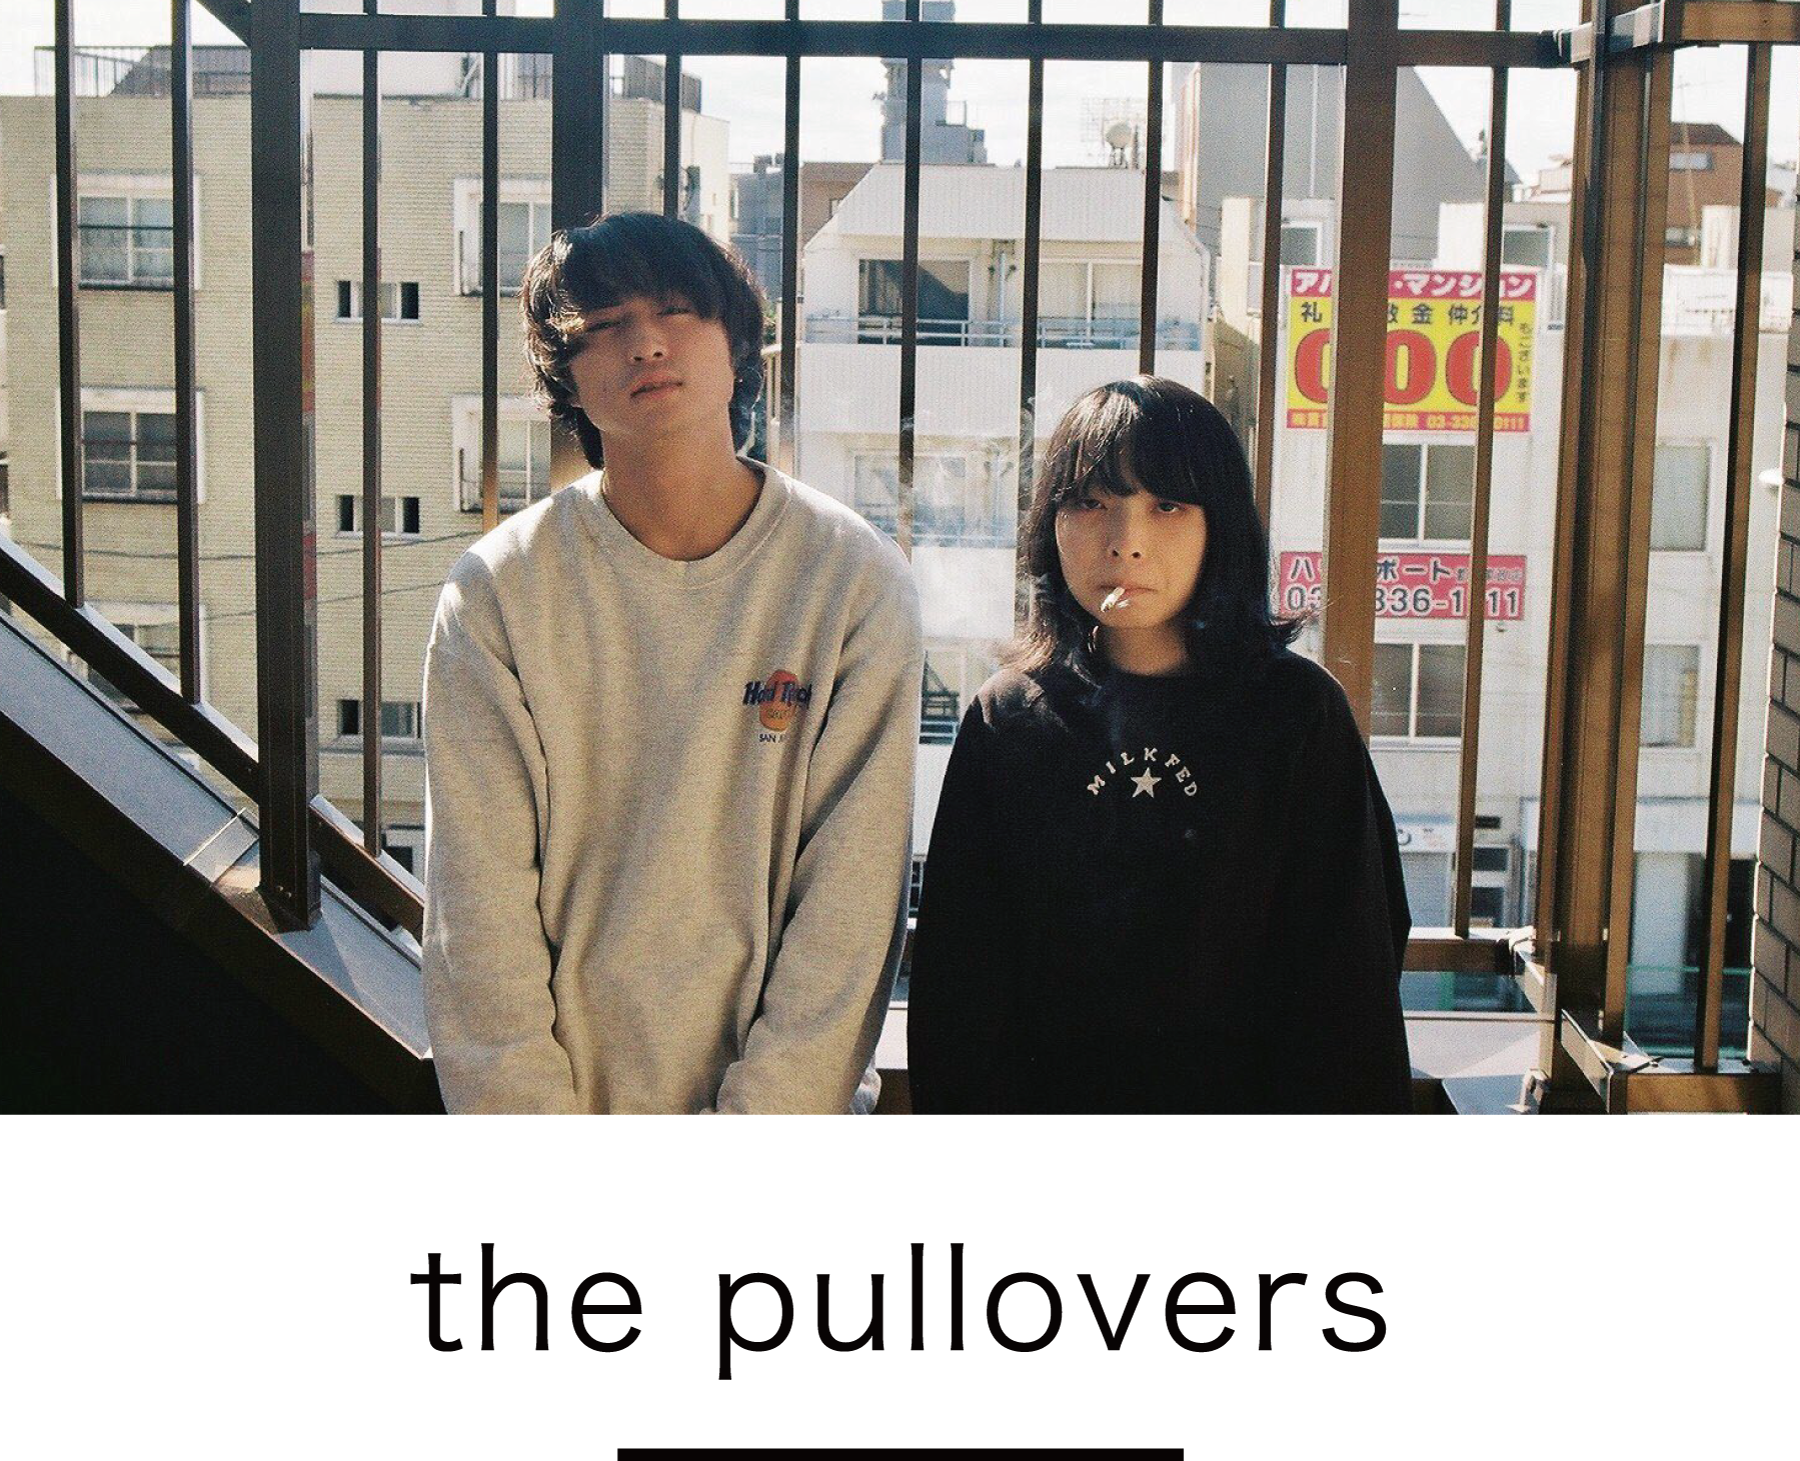 the pullovers